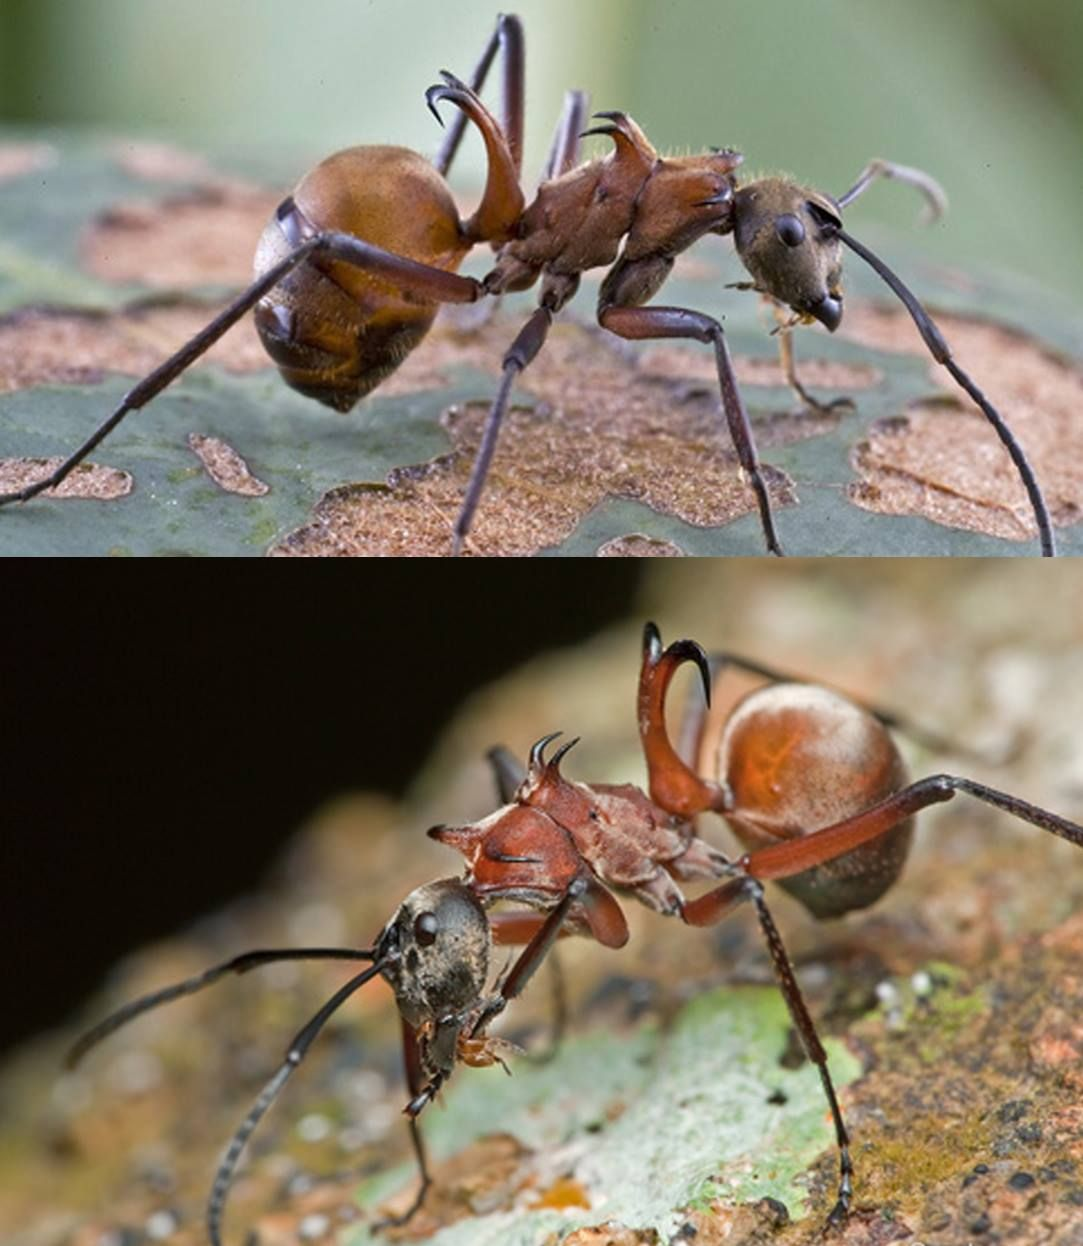 Fish Hook Ant Polyrhachis Bihamata Native To Cambodia This Species Of Ant Is Noted For The Three Pairs Of Curved Spines From Ants Insects Lovely Creatures